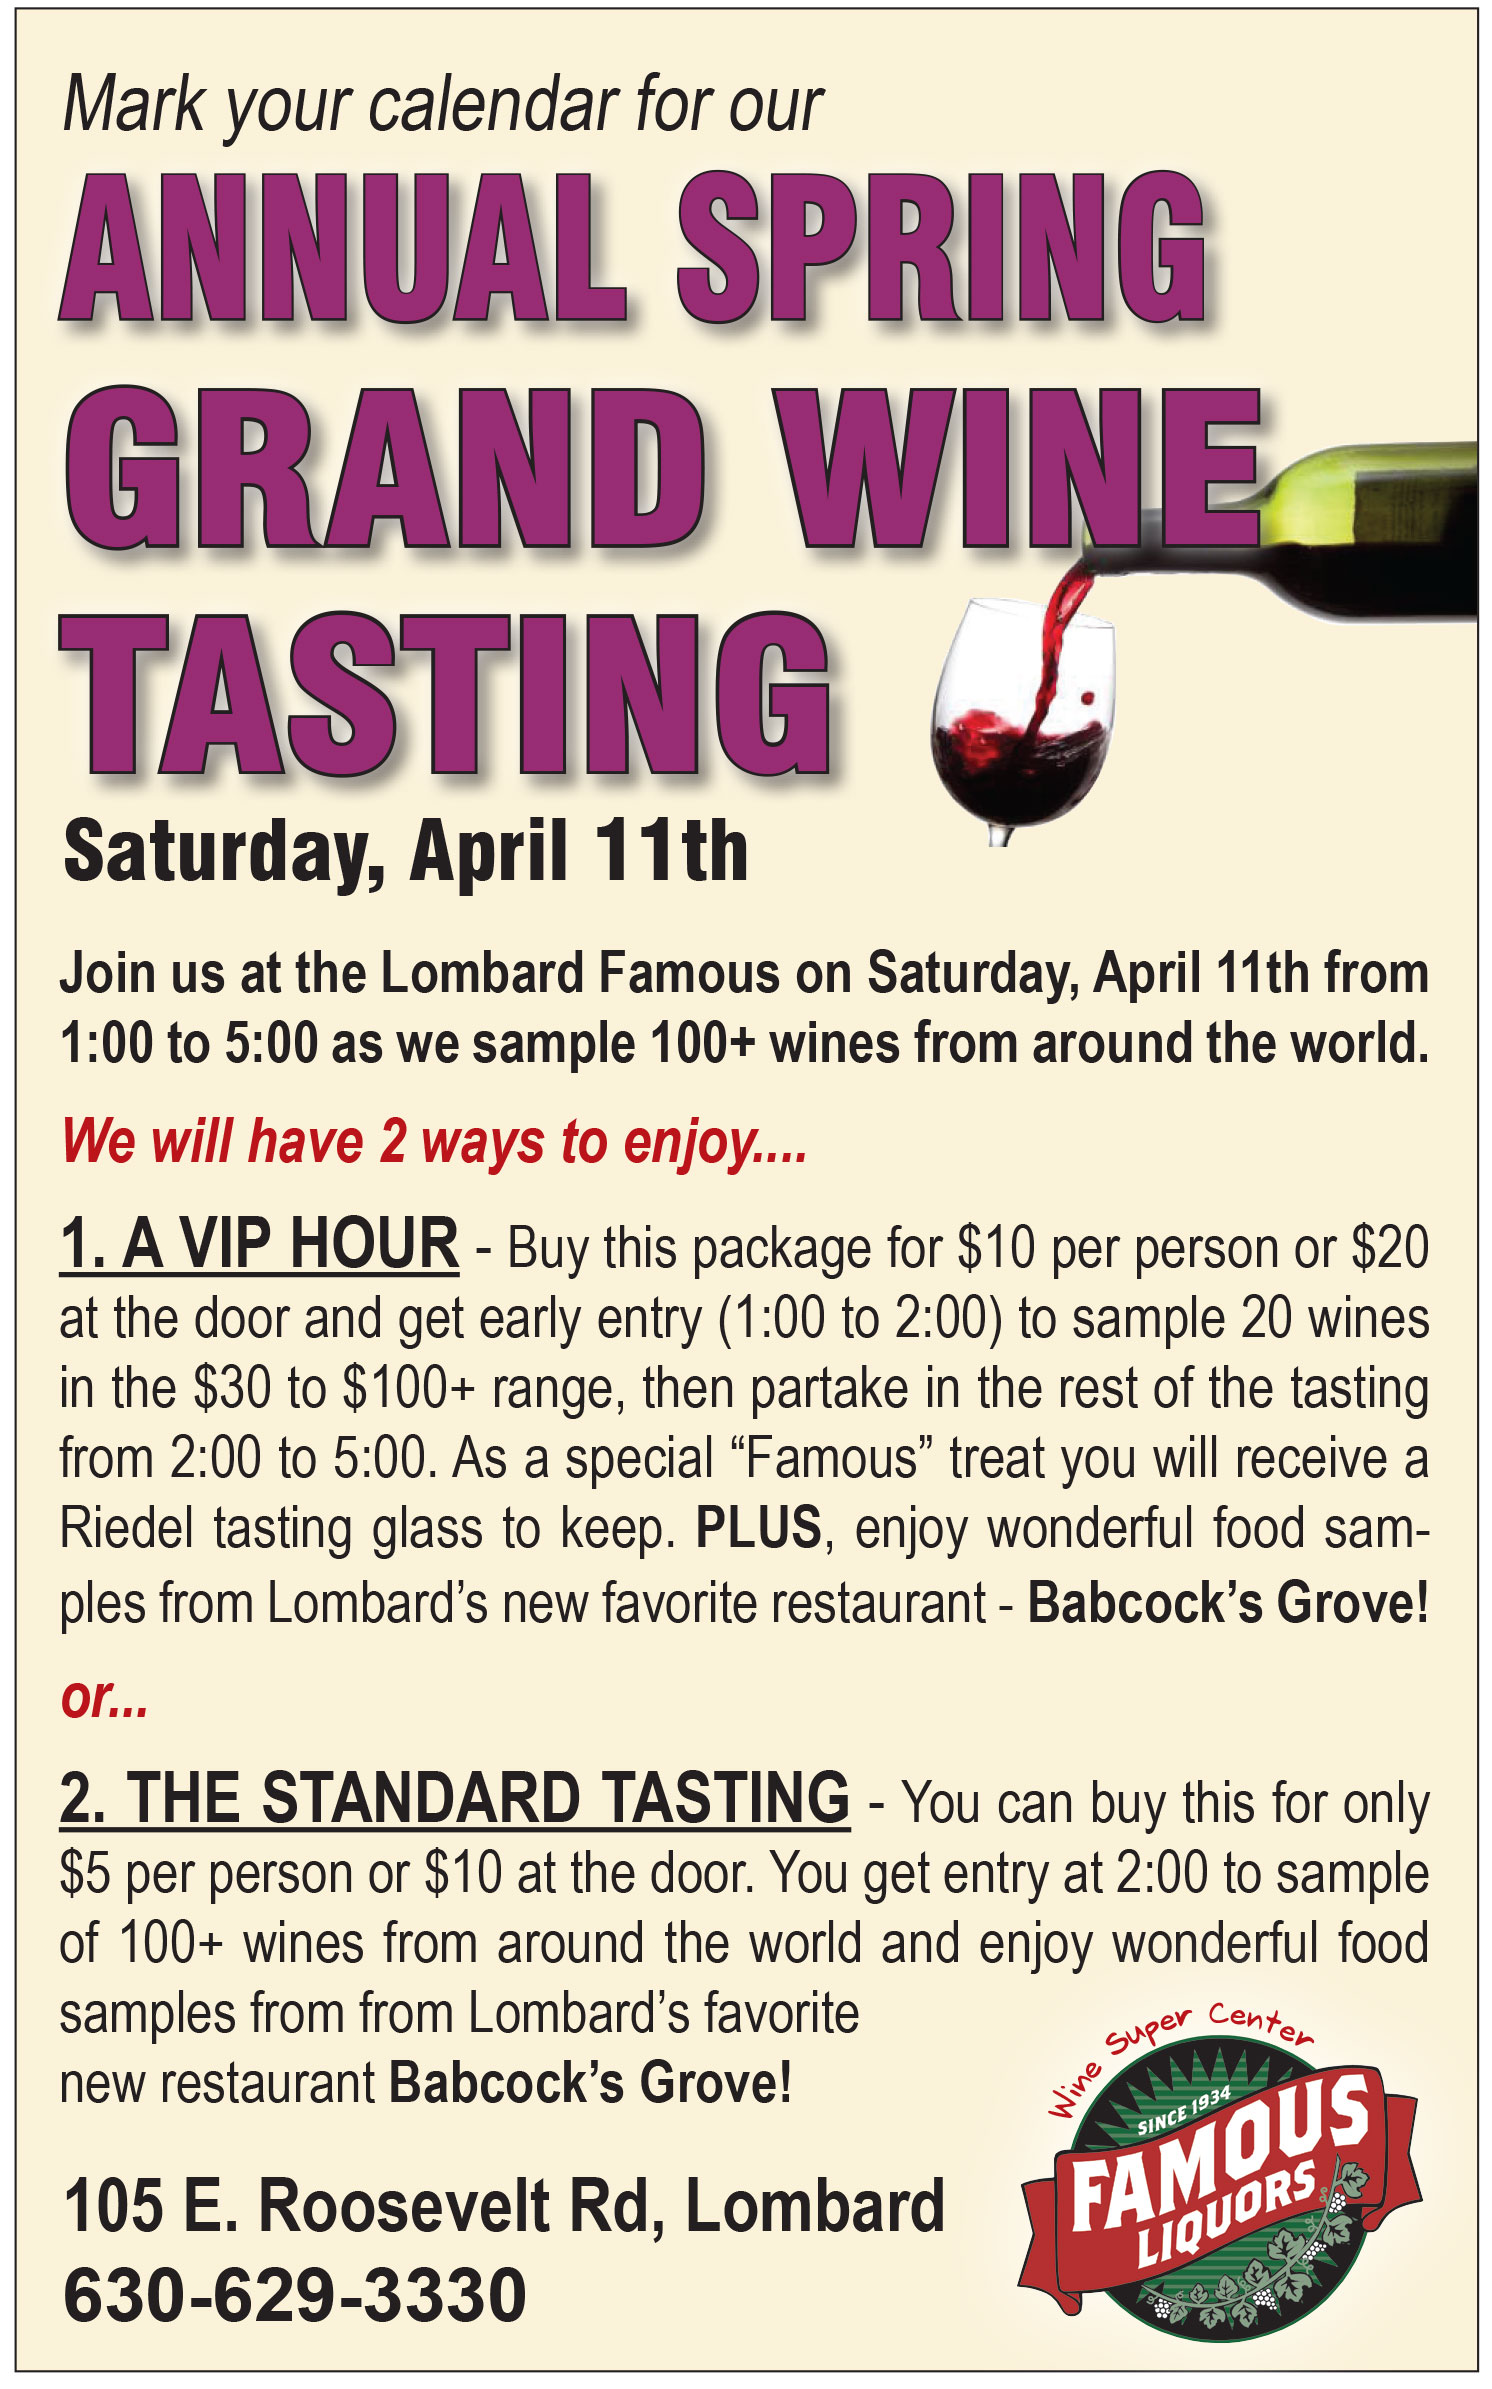 Famous-Grand-Tasting-Lombard-4-11-one-up